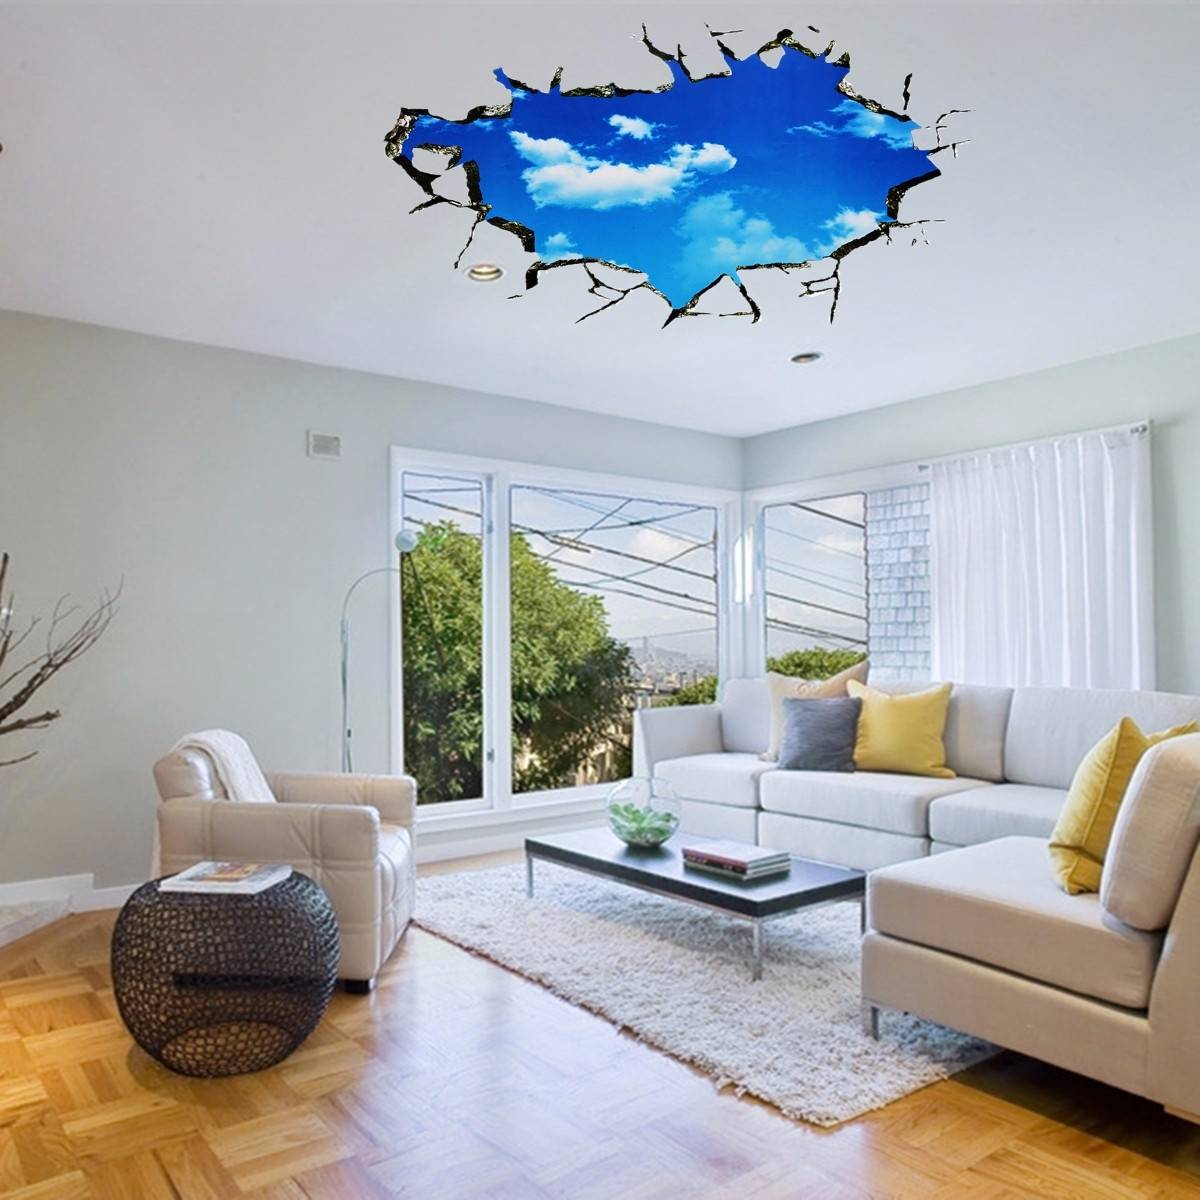 3d Wall Decor Pag Blue Sky 3d Wall Decals Sticker Ceiling Hole Sticker Home Bedroom Wall Decor Gift